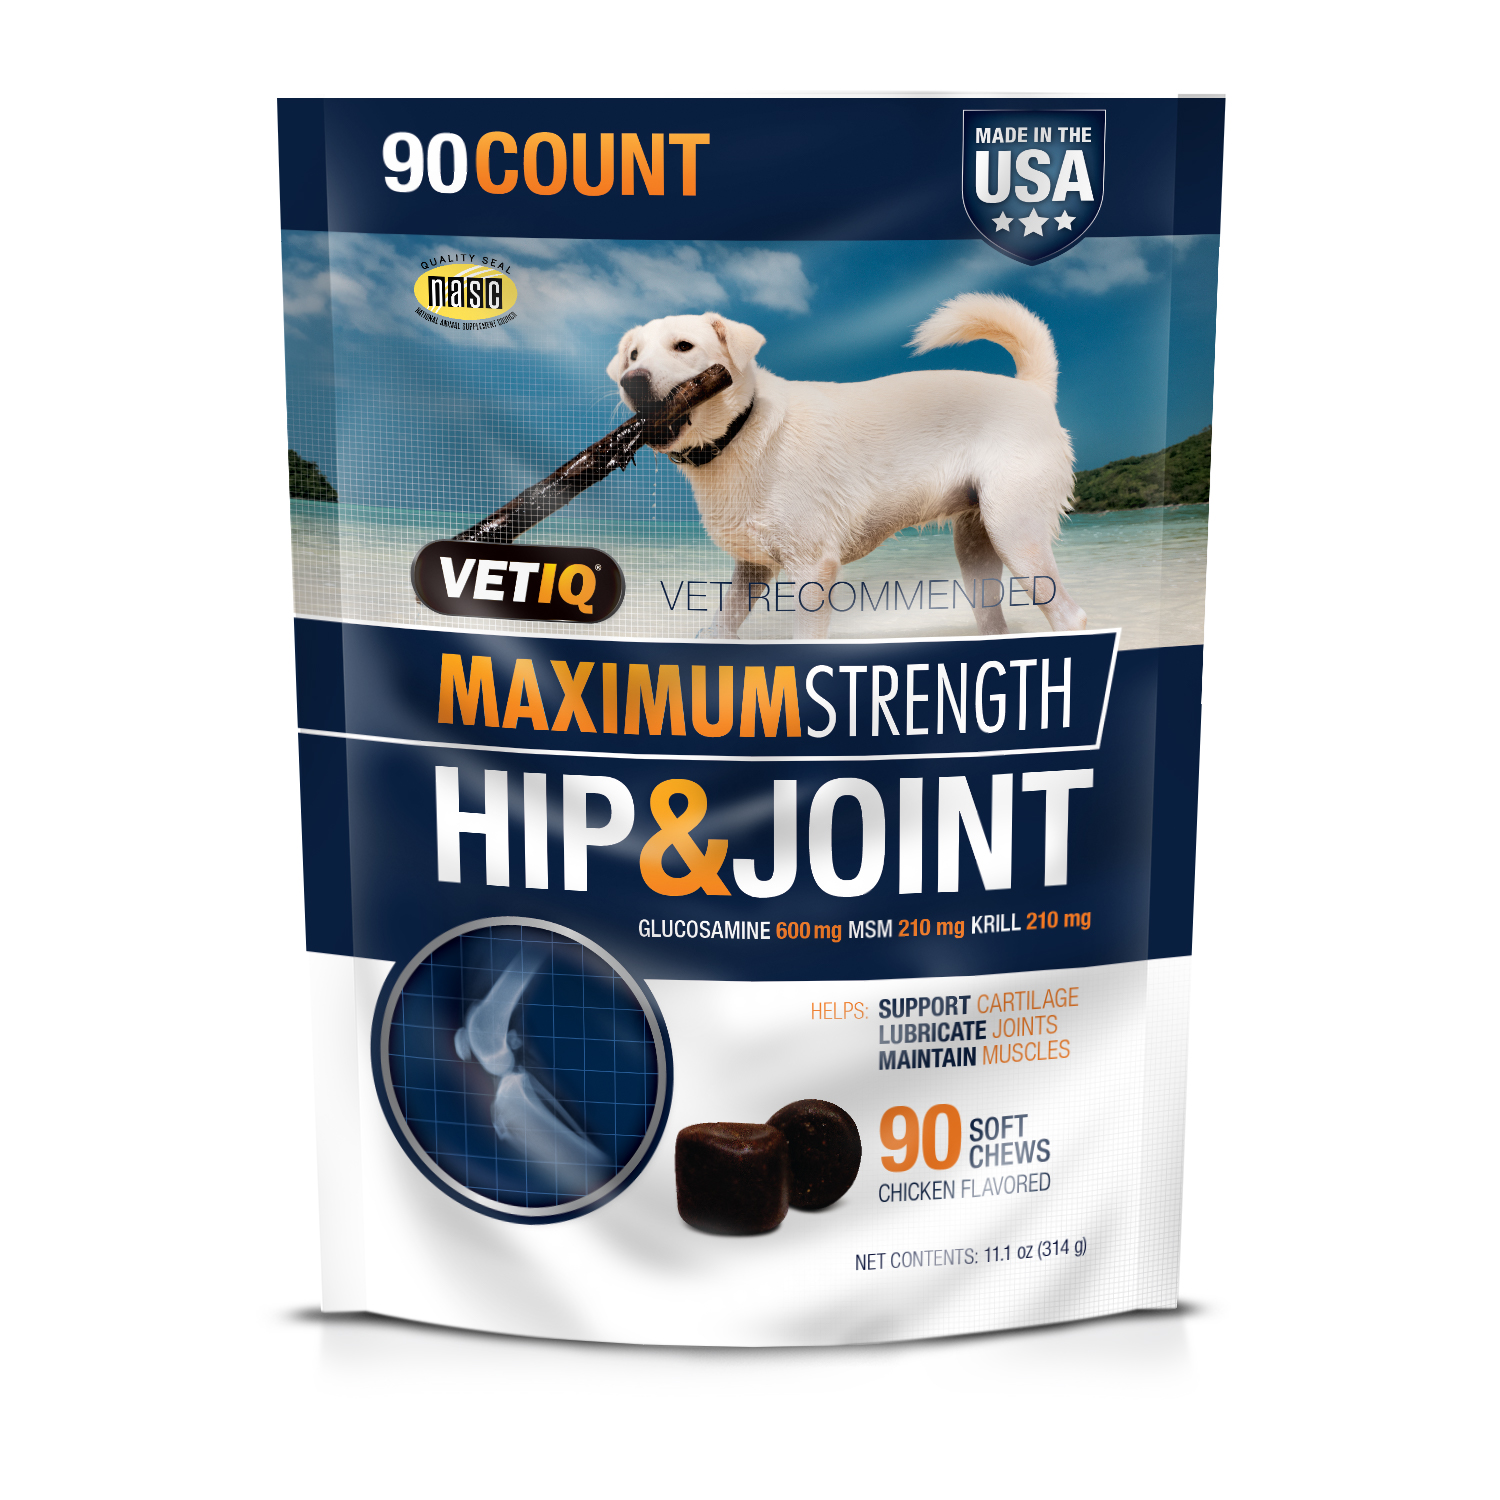 Vetiq Maximum Strength Hip & Joint Dog Supplement, 90 Count